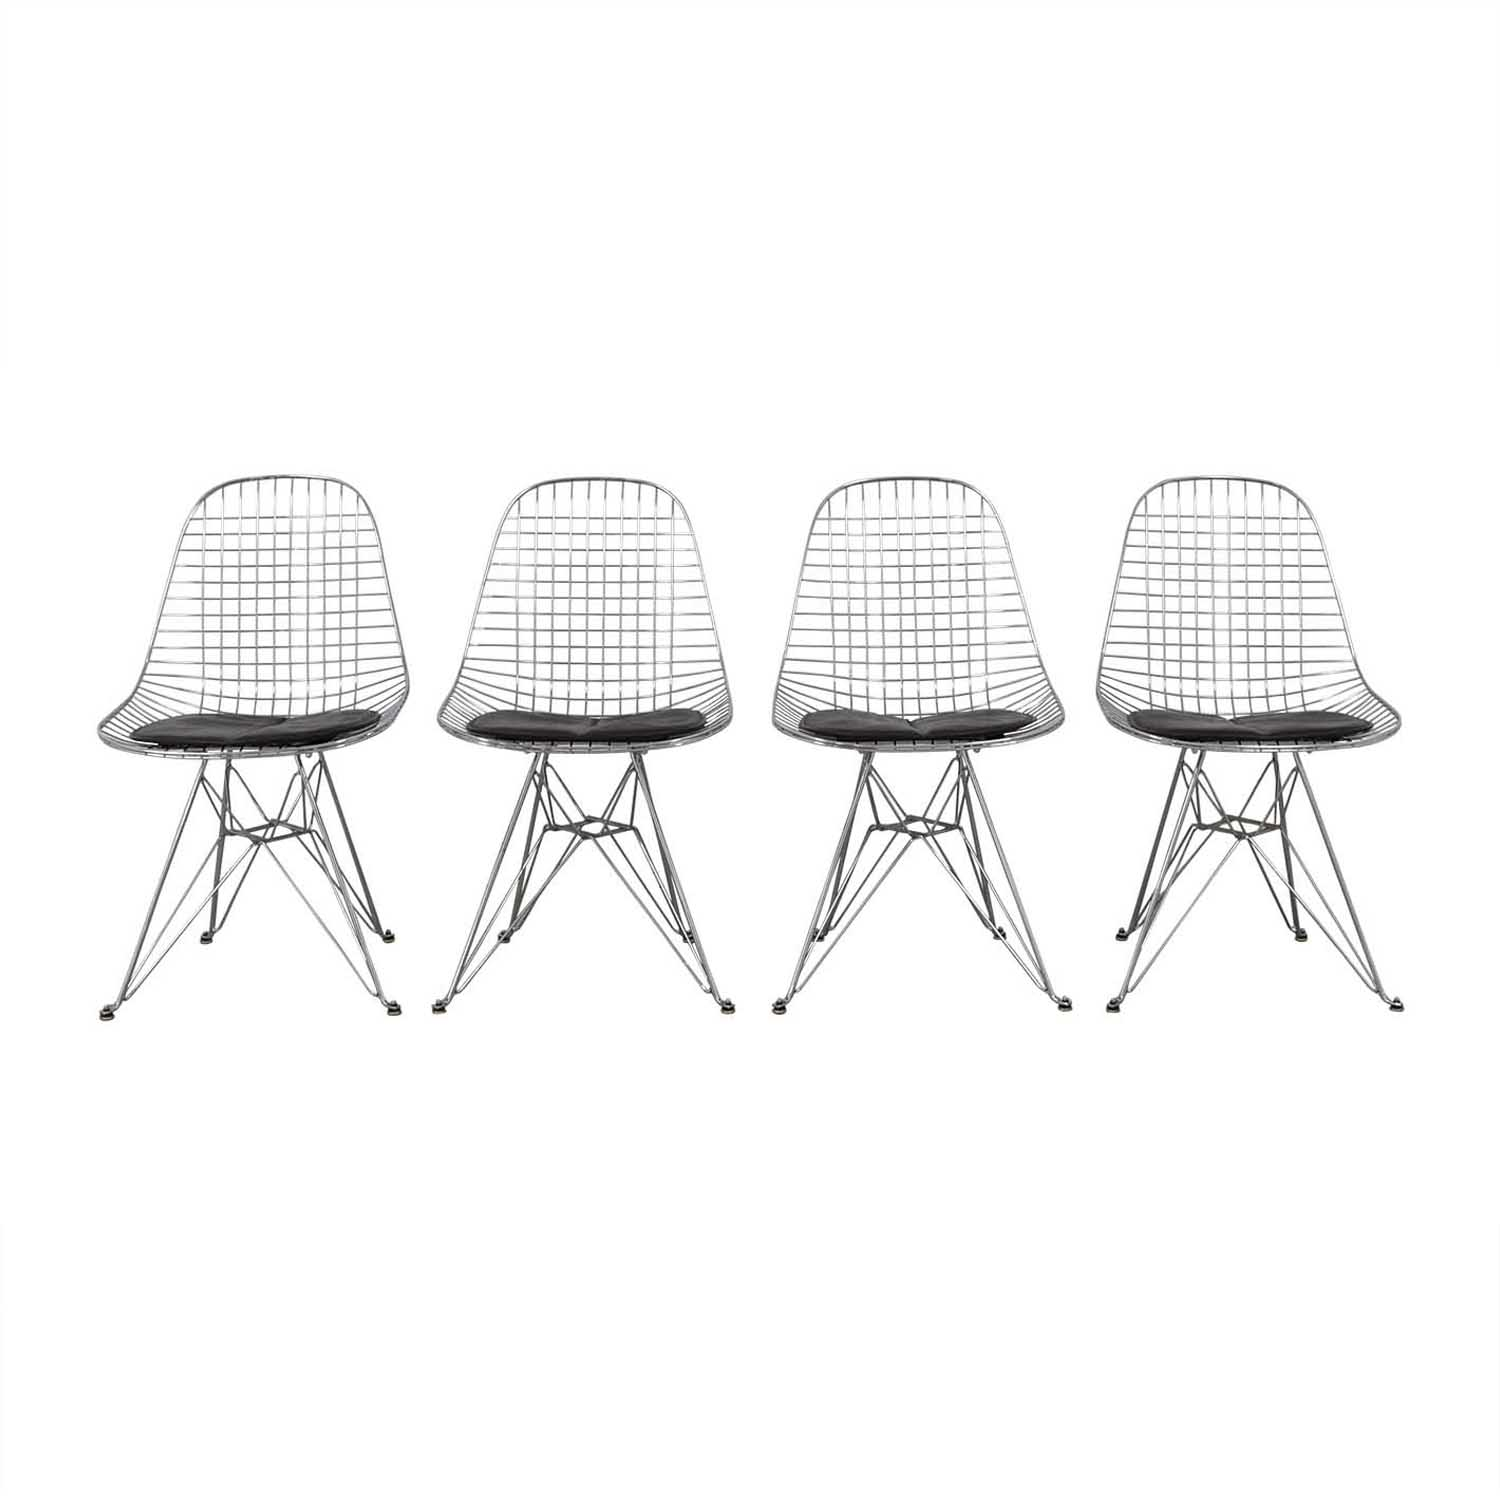 Modernica Modernica Eiffel Tower Wire Chairs Dining Chairs